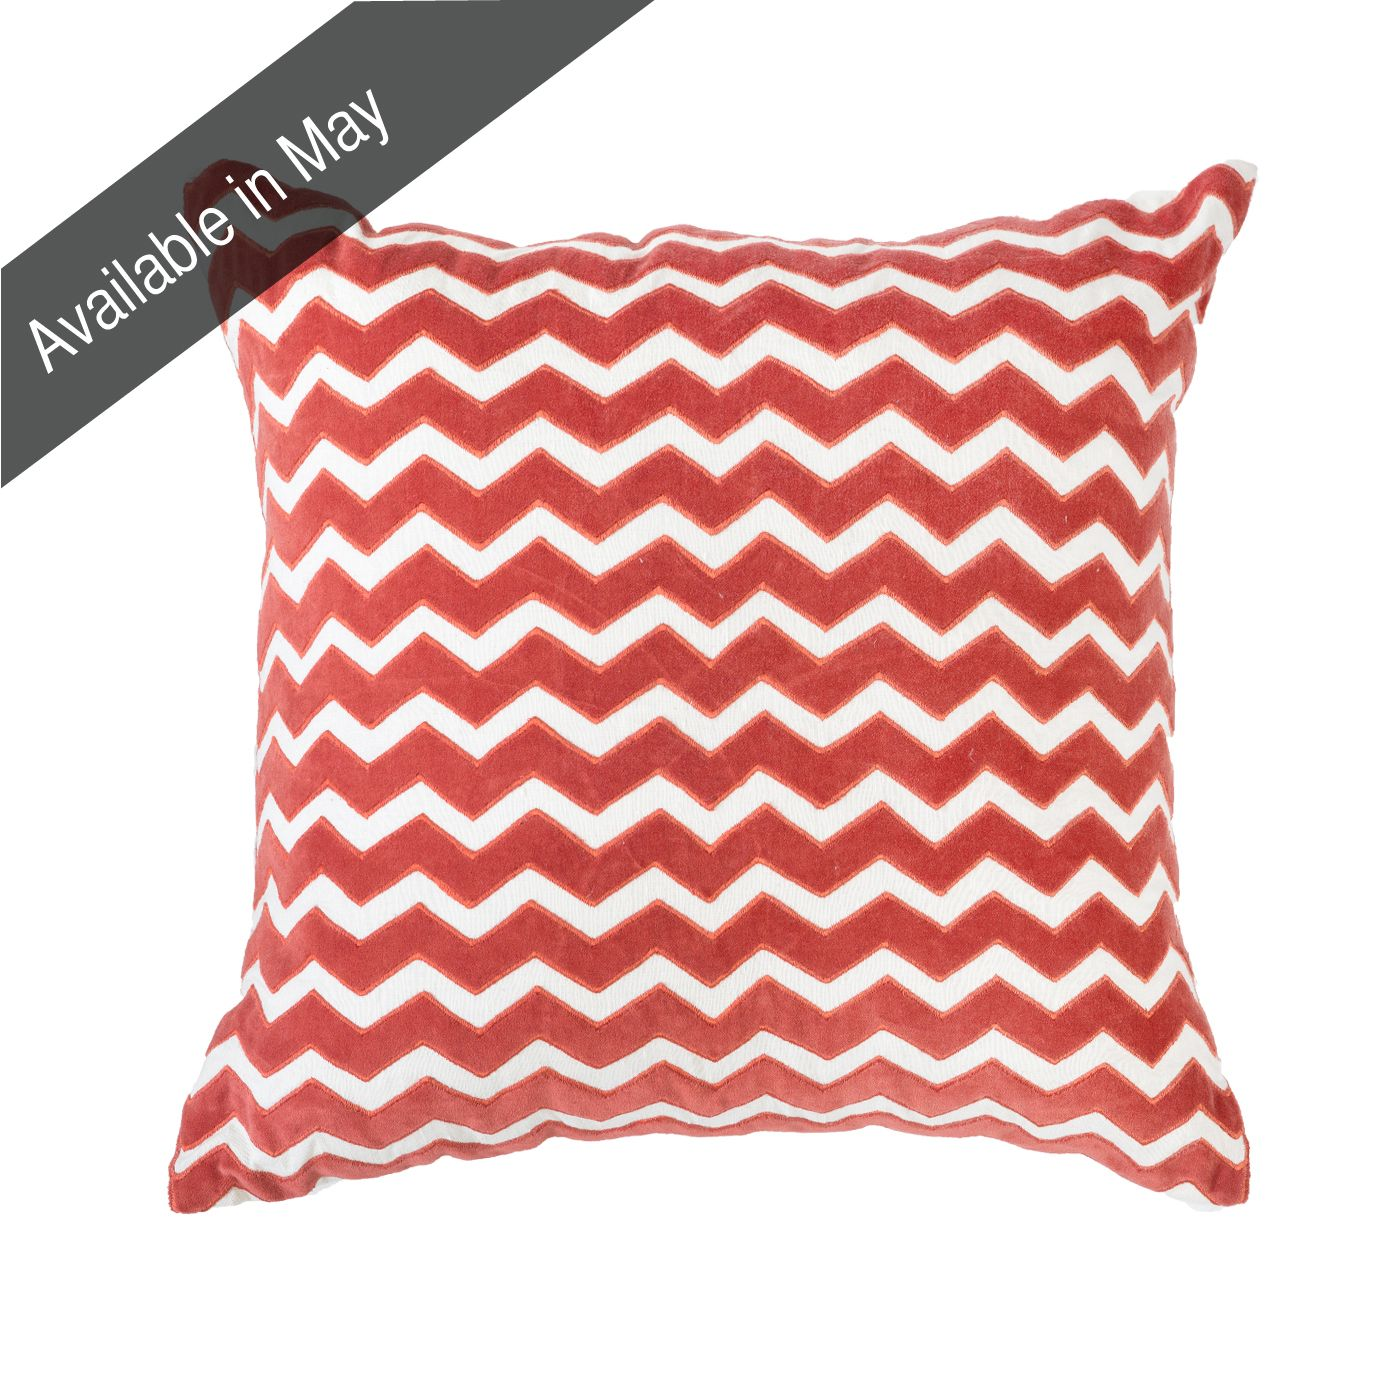 Zig Velvet Orange Medium cushion 50x50cm - Bandhini Homewear Design